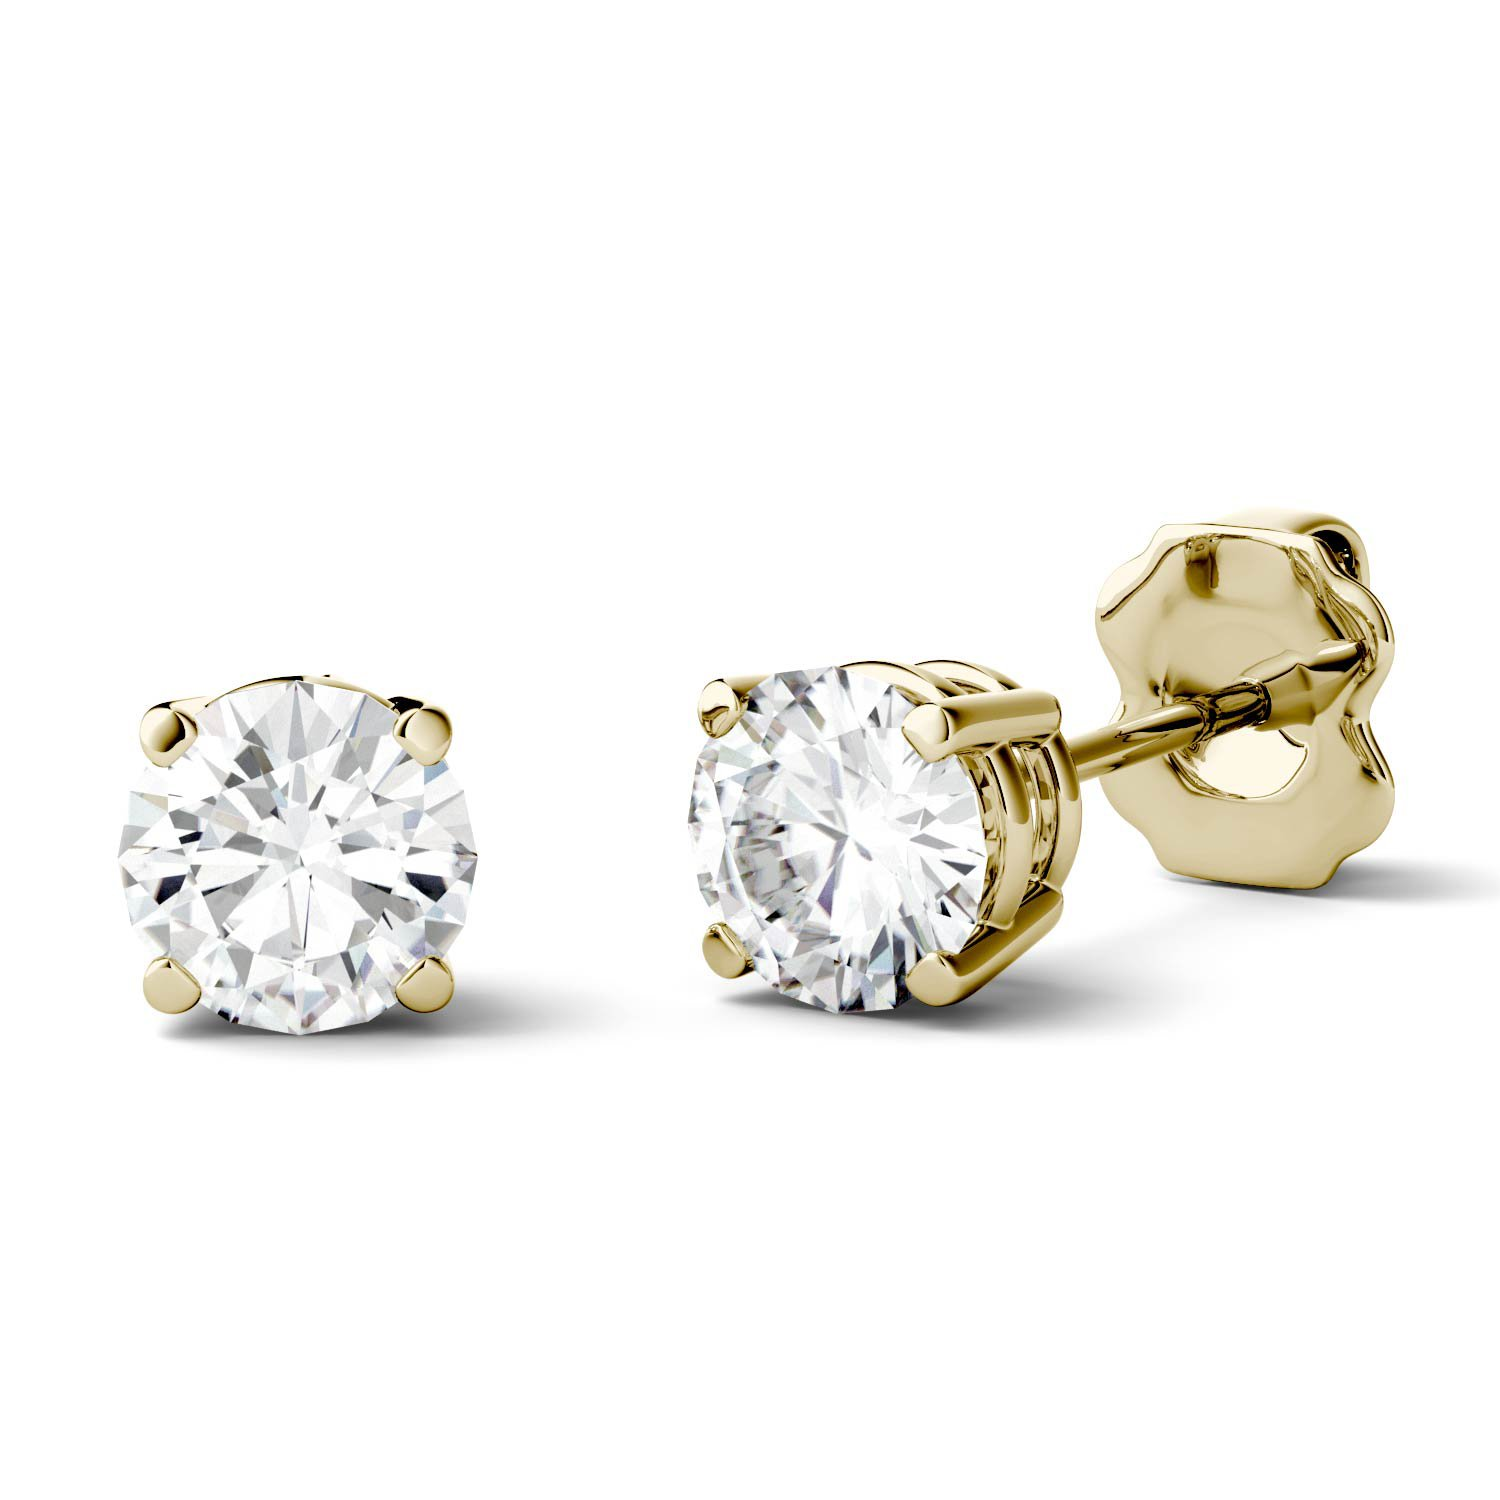 Forever One 5.0mm Round Cut Moissanite Stud Earrings, 1.00cttw DEW (D-E-F) by Charles & Colvard